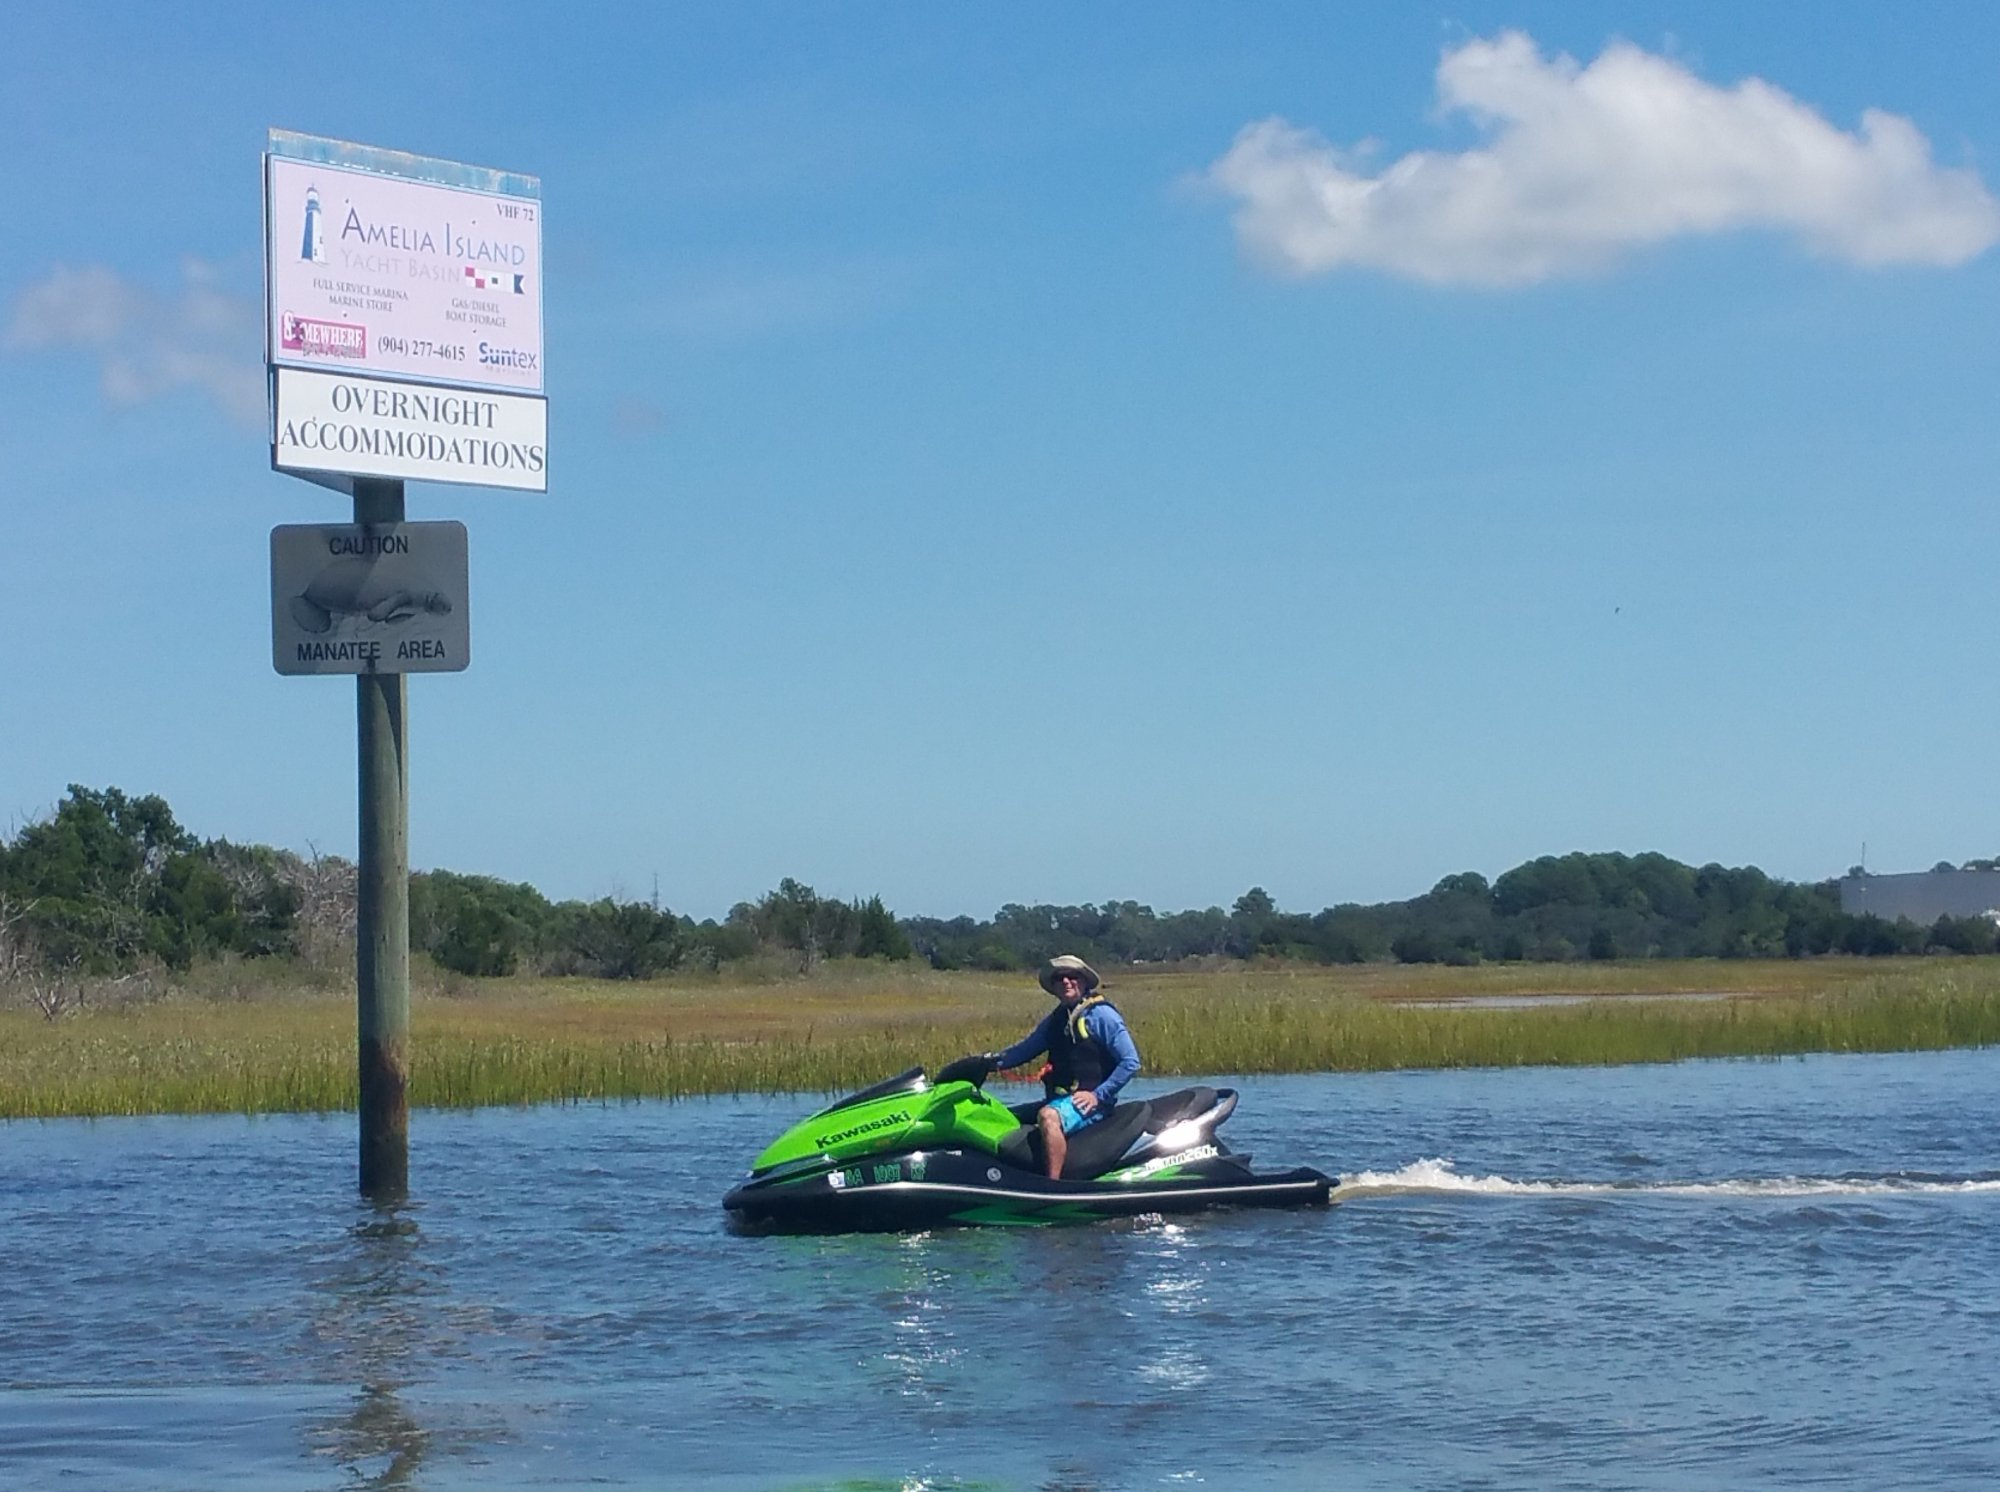 Riding our Jetskis on the ICW at the Amelia Island Yacht Basin Entrance